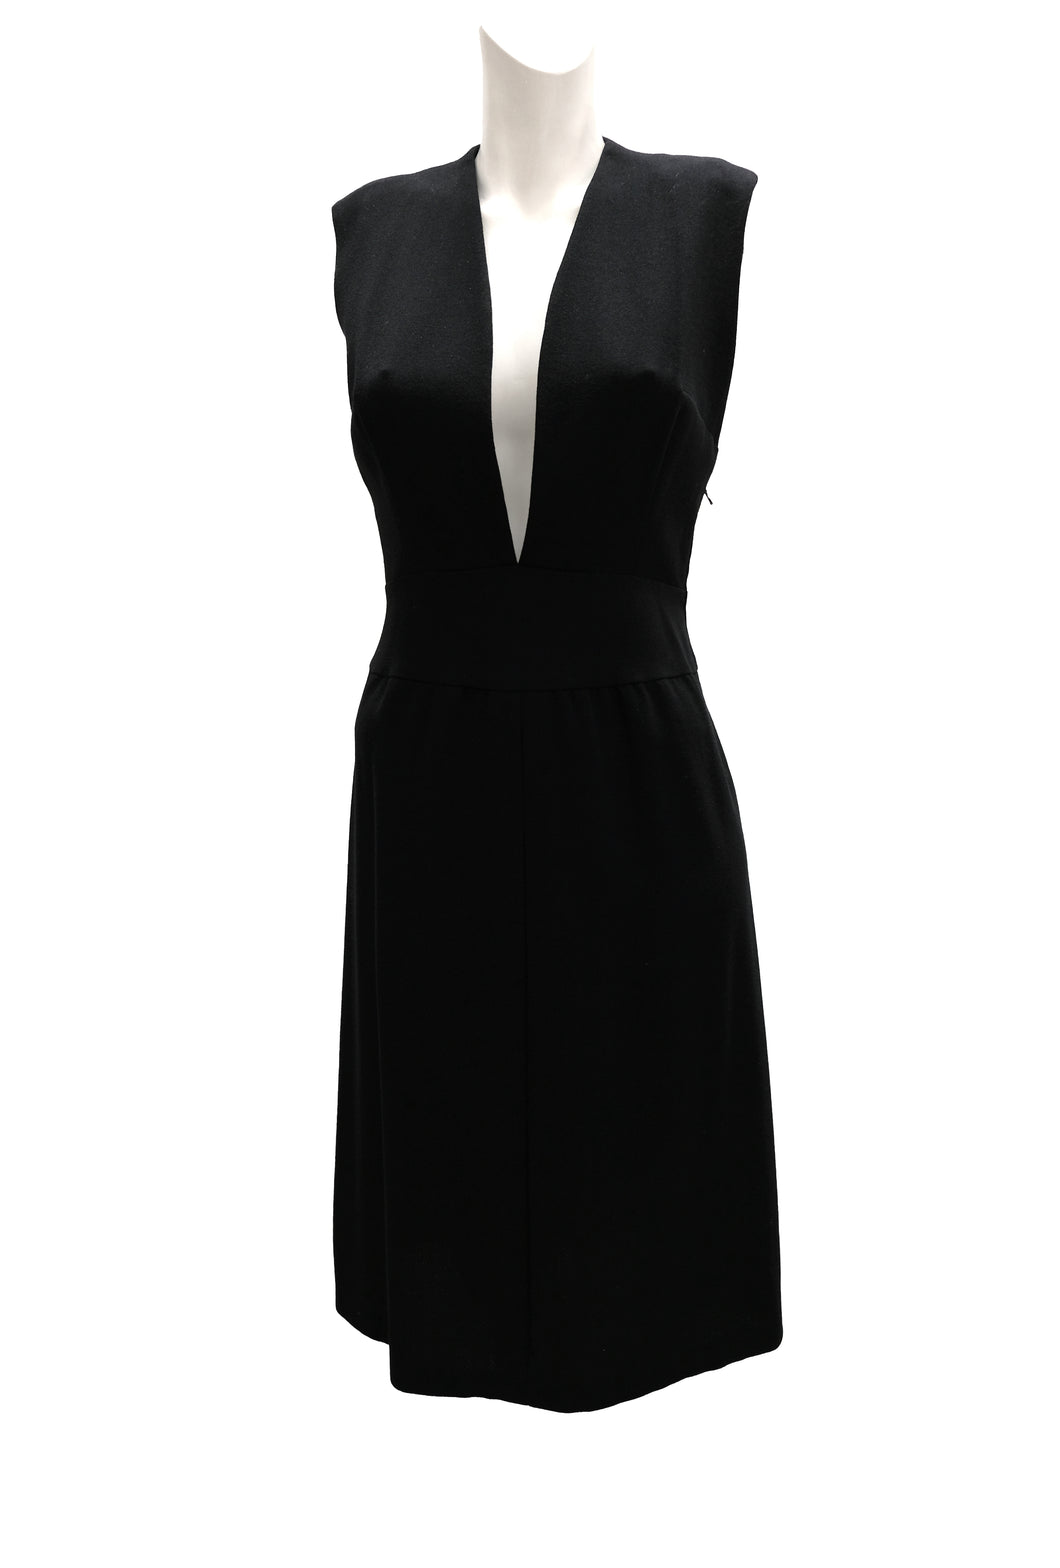 1990s Vintage Minimalist Dress in Black Crepe with Plunging Neck, UK10-12